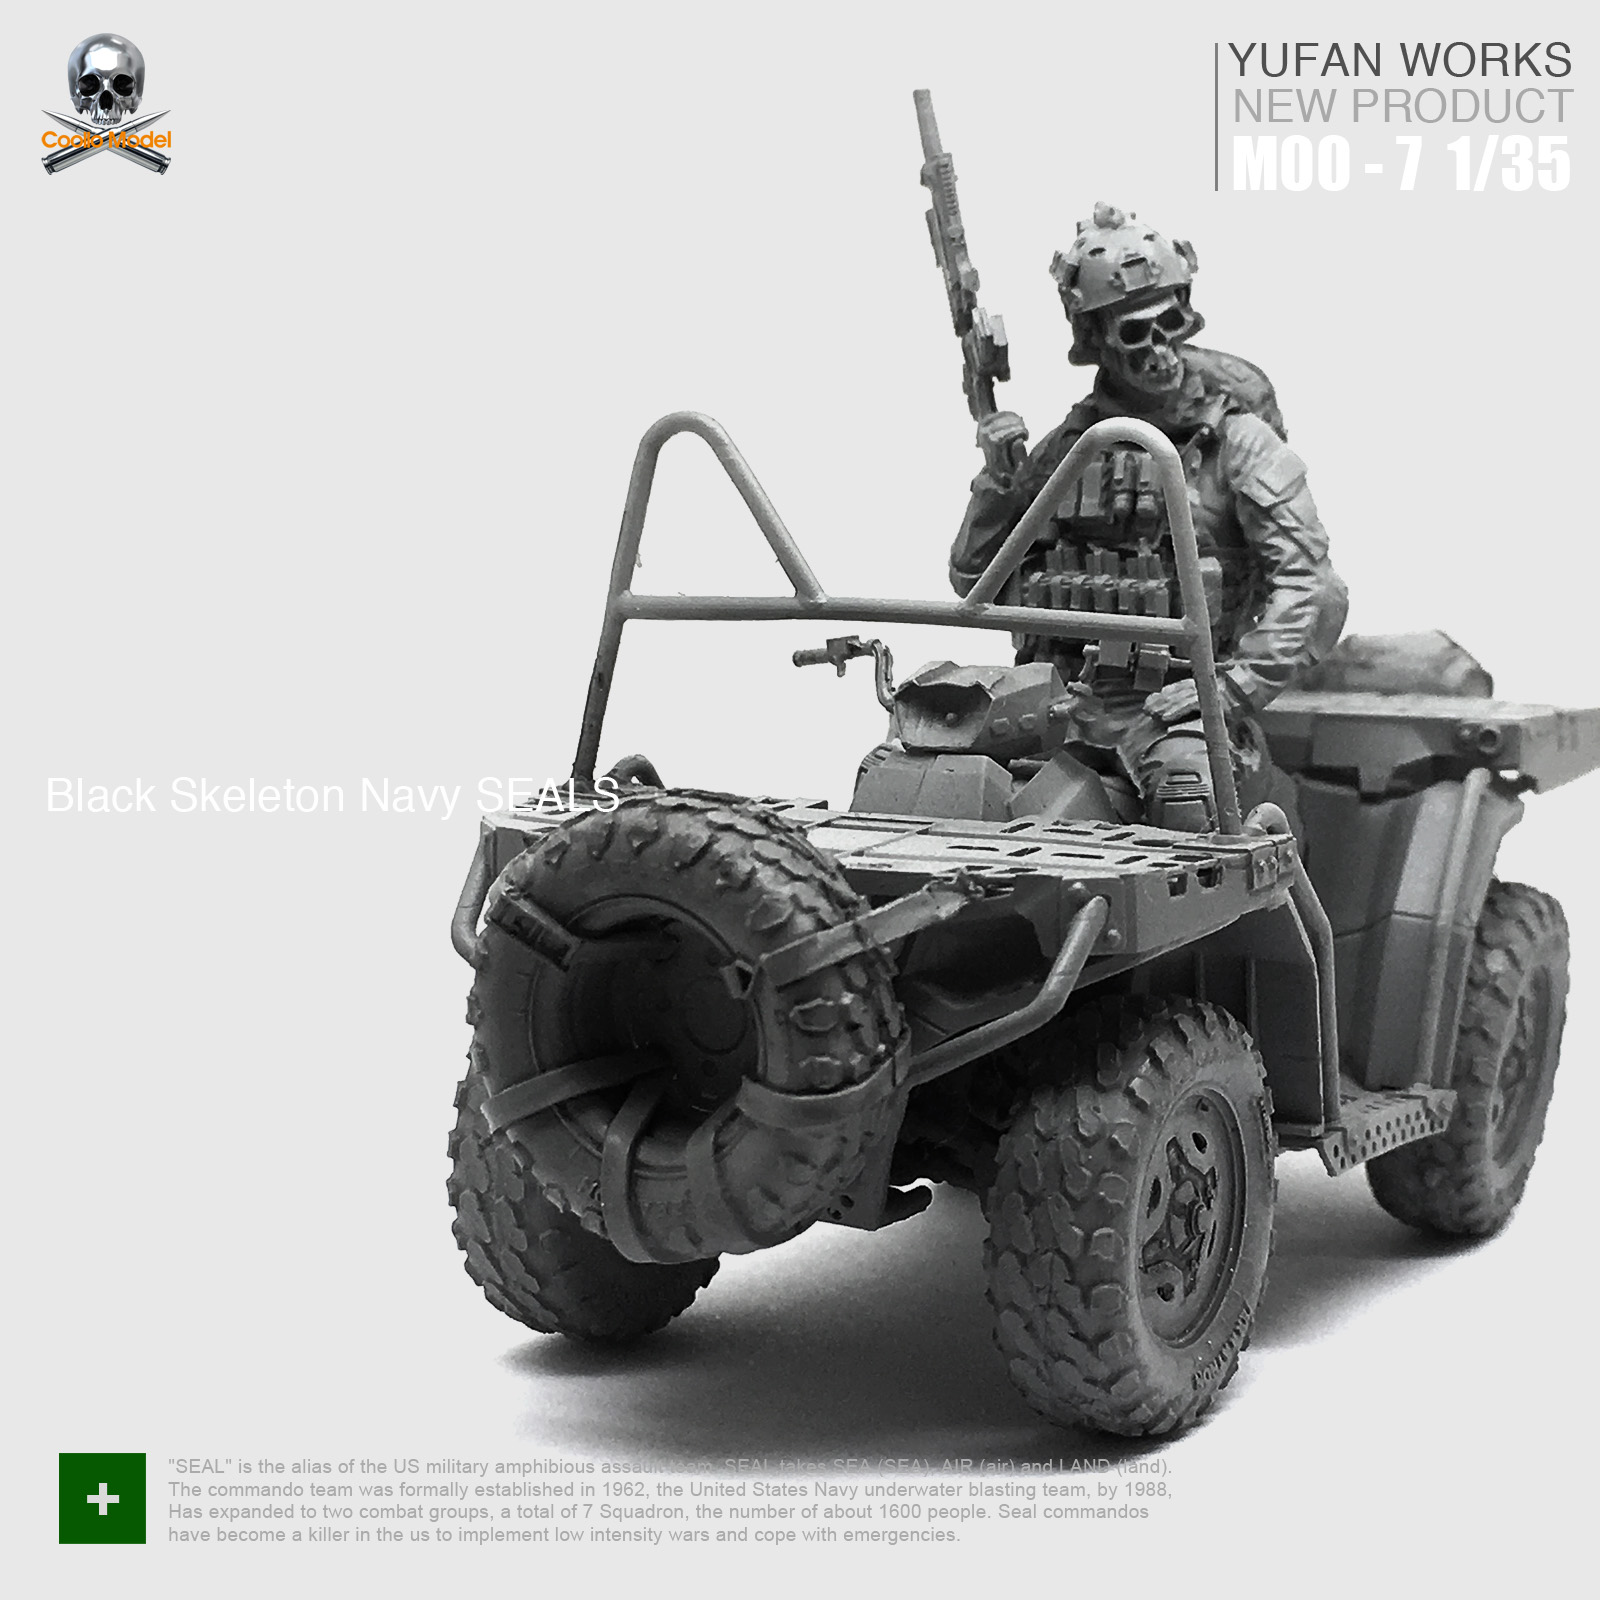 1/35 Resin Figure Kits Soldier + Terrain Car Black Skeleton Navy Seals MOO-07 Unassembled Unpainted 1 16 figure resin model kits ww2 masked soldier unpainted and not assembled free shipping 87g